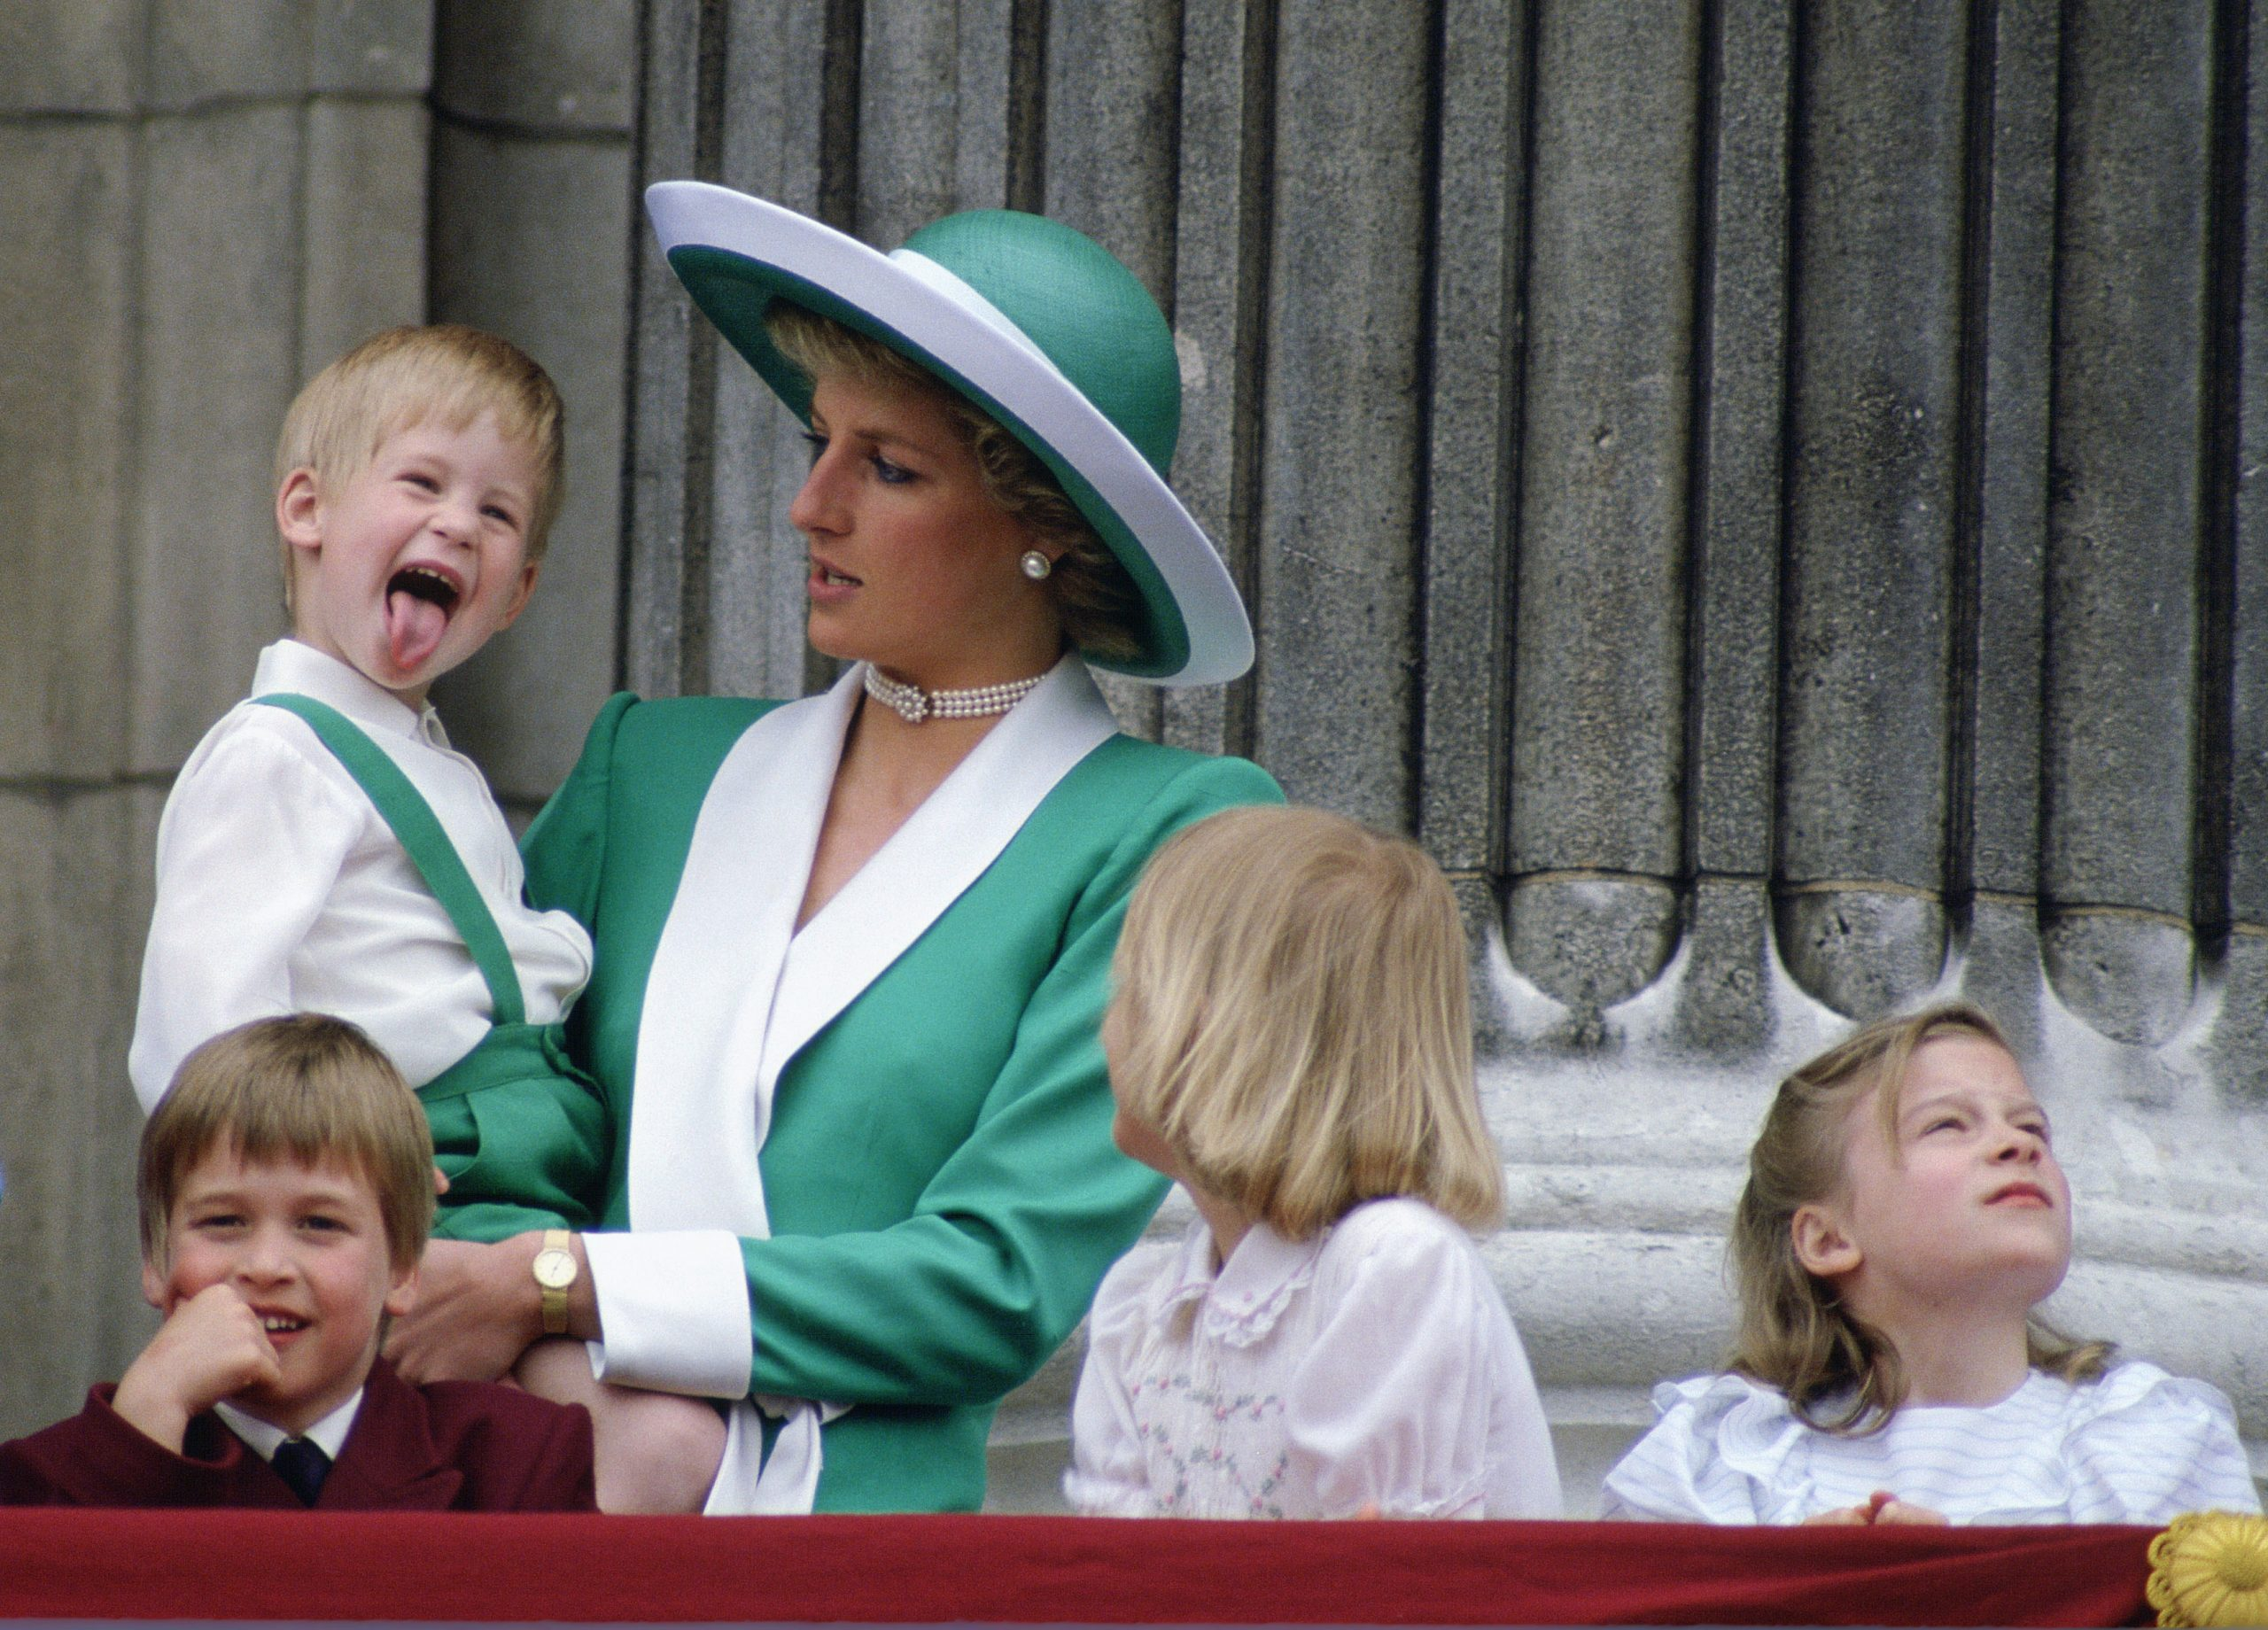 Royal fans are loving this resurfaced video of Prince Harry being told off by Princess Diana